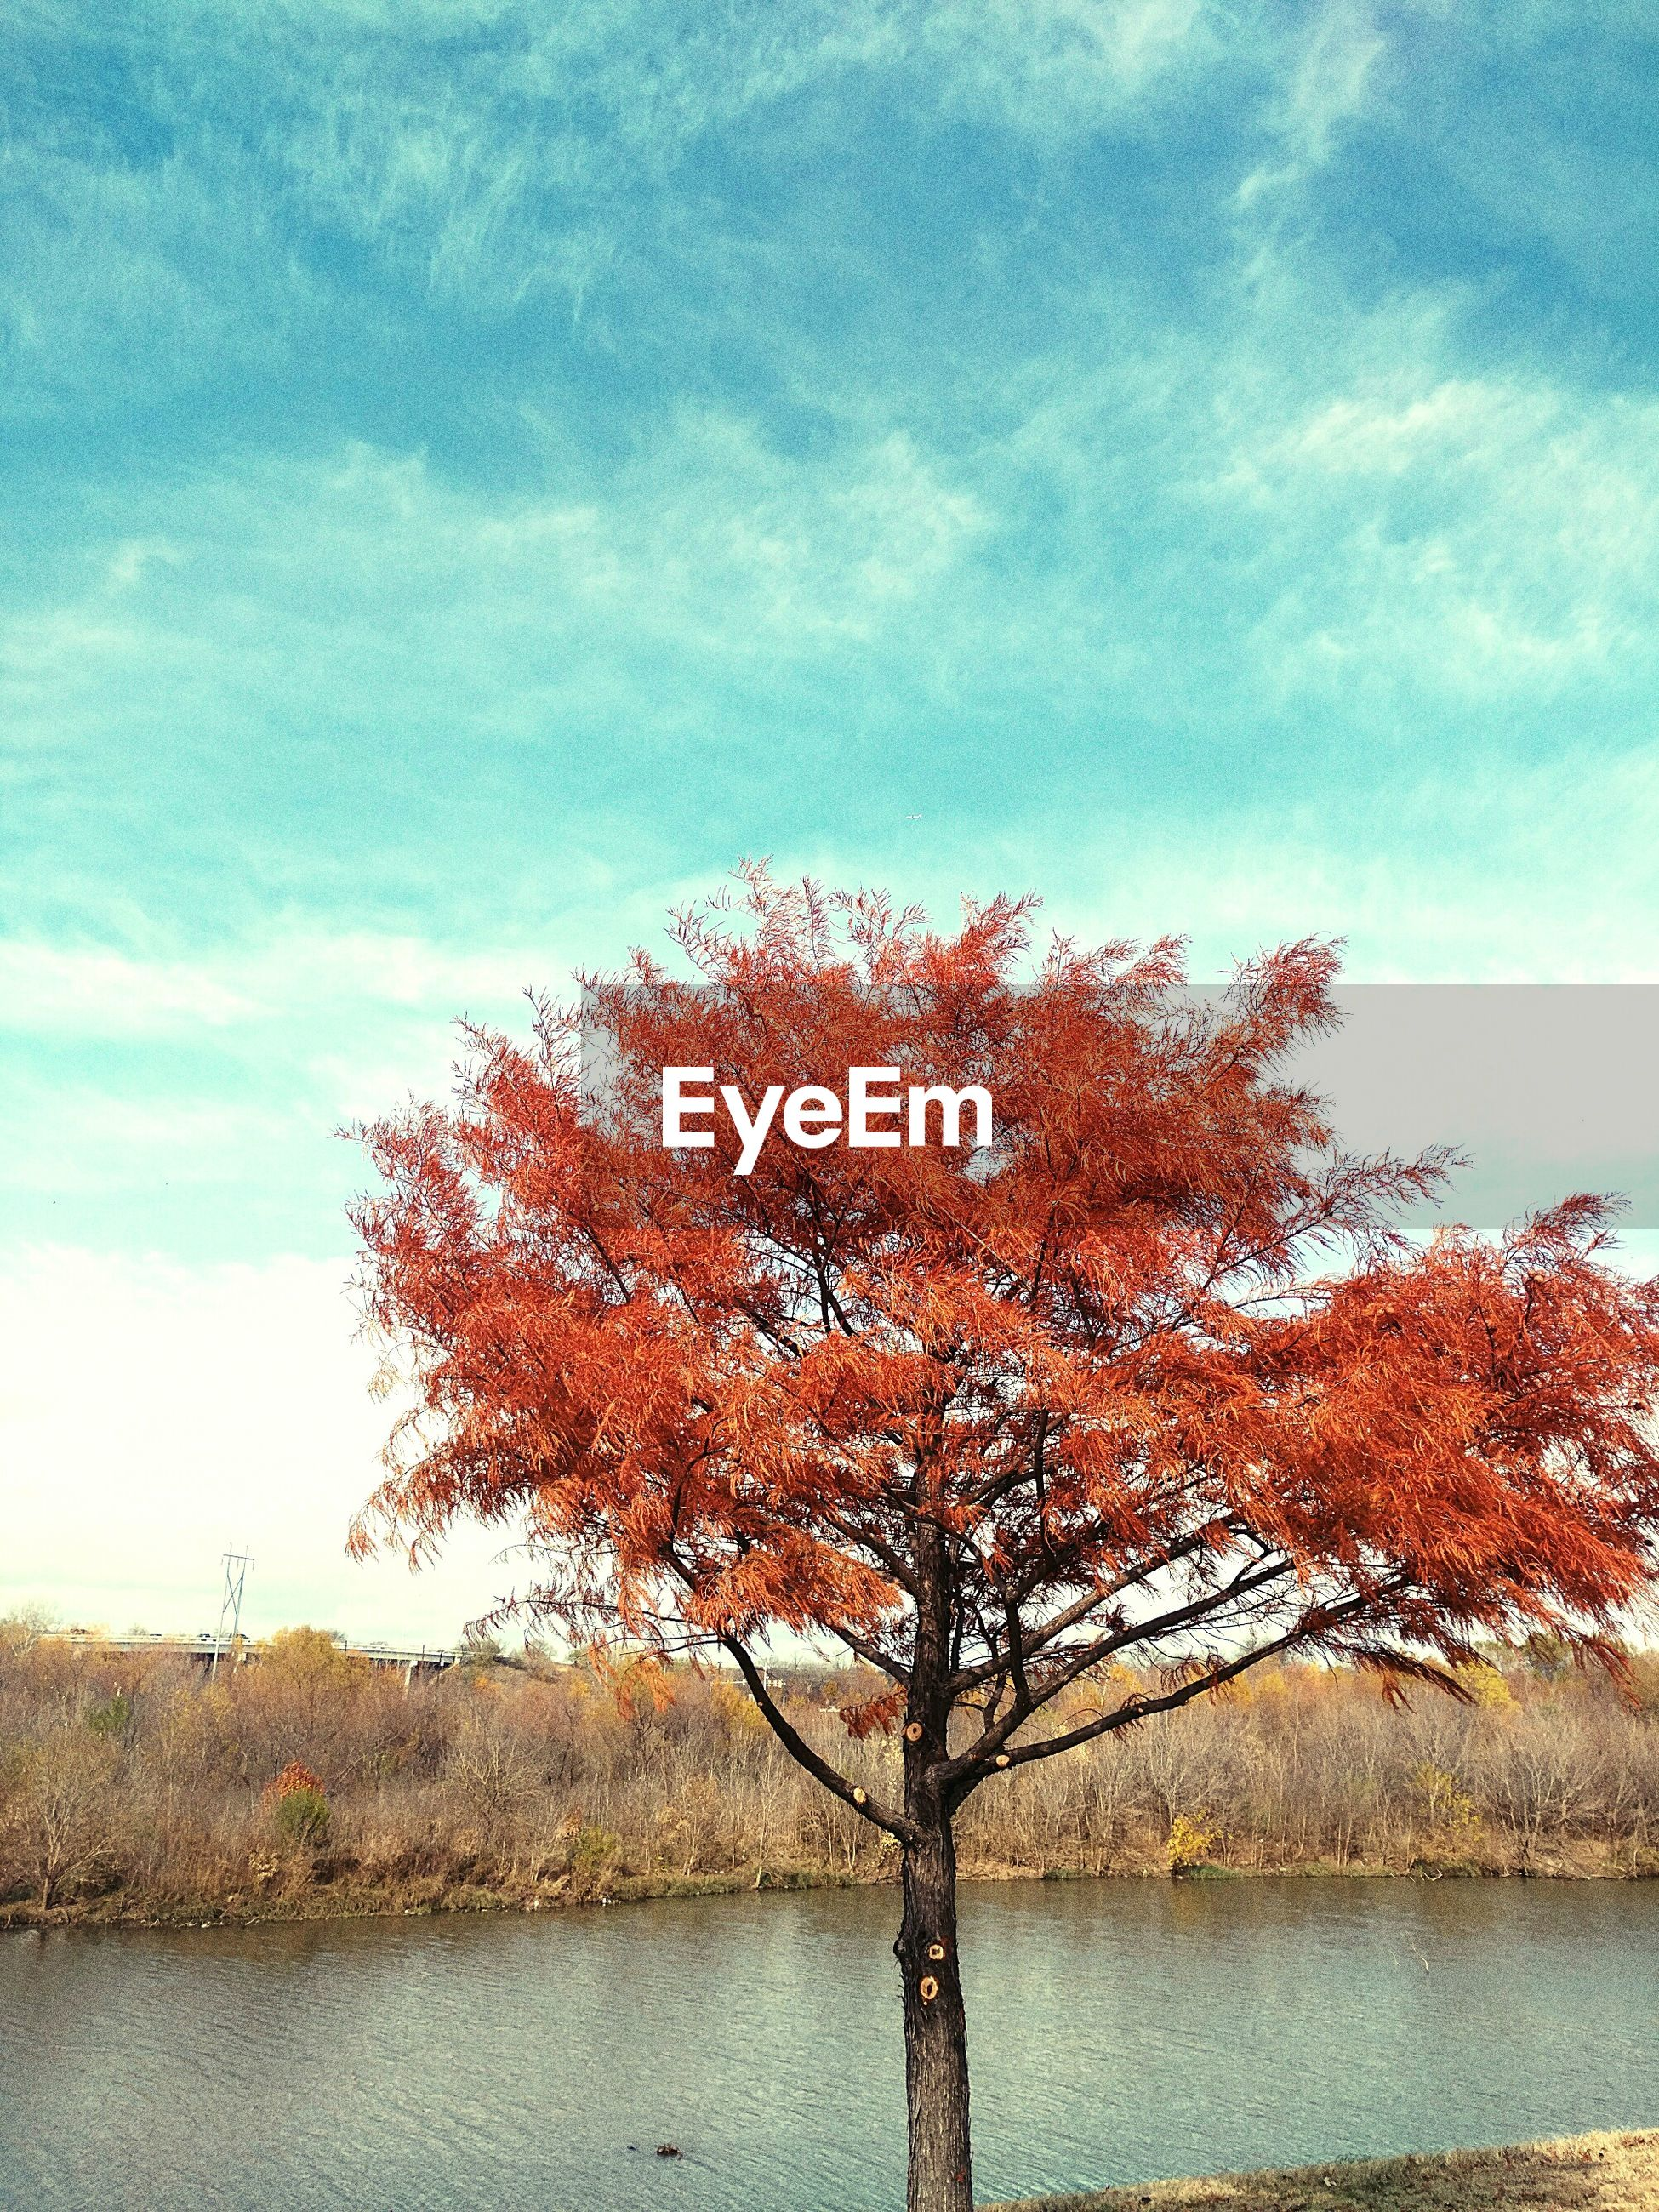 tree, growth, sky, nature, beauty in nature, water, no people, red, outdoors, scenics, tranquility, day, branch, freshness, single tree